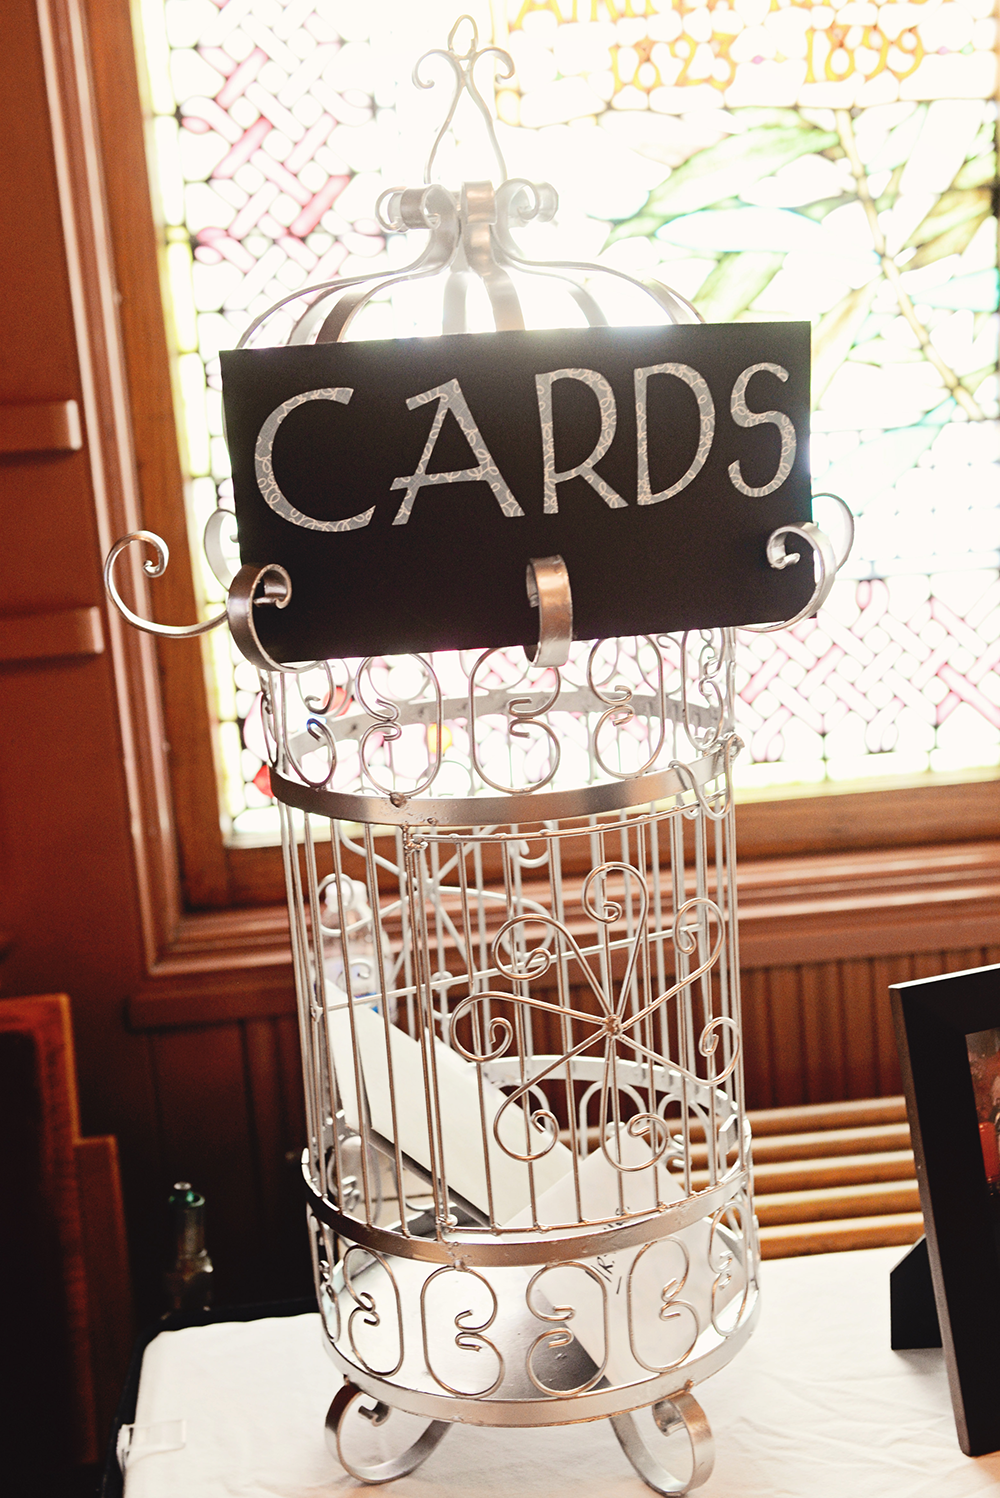 menomonie-wisconsin-wedding-card-holder